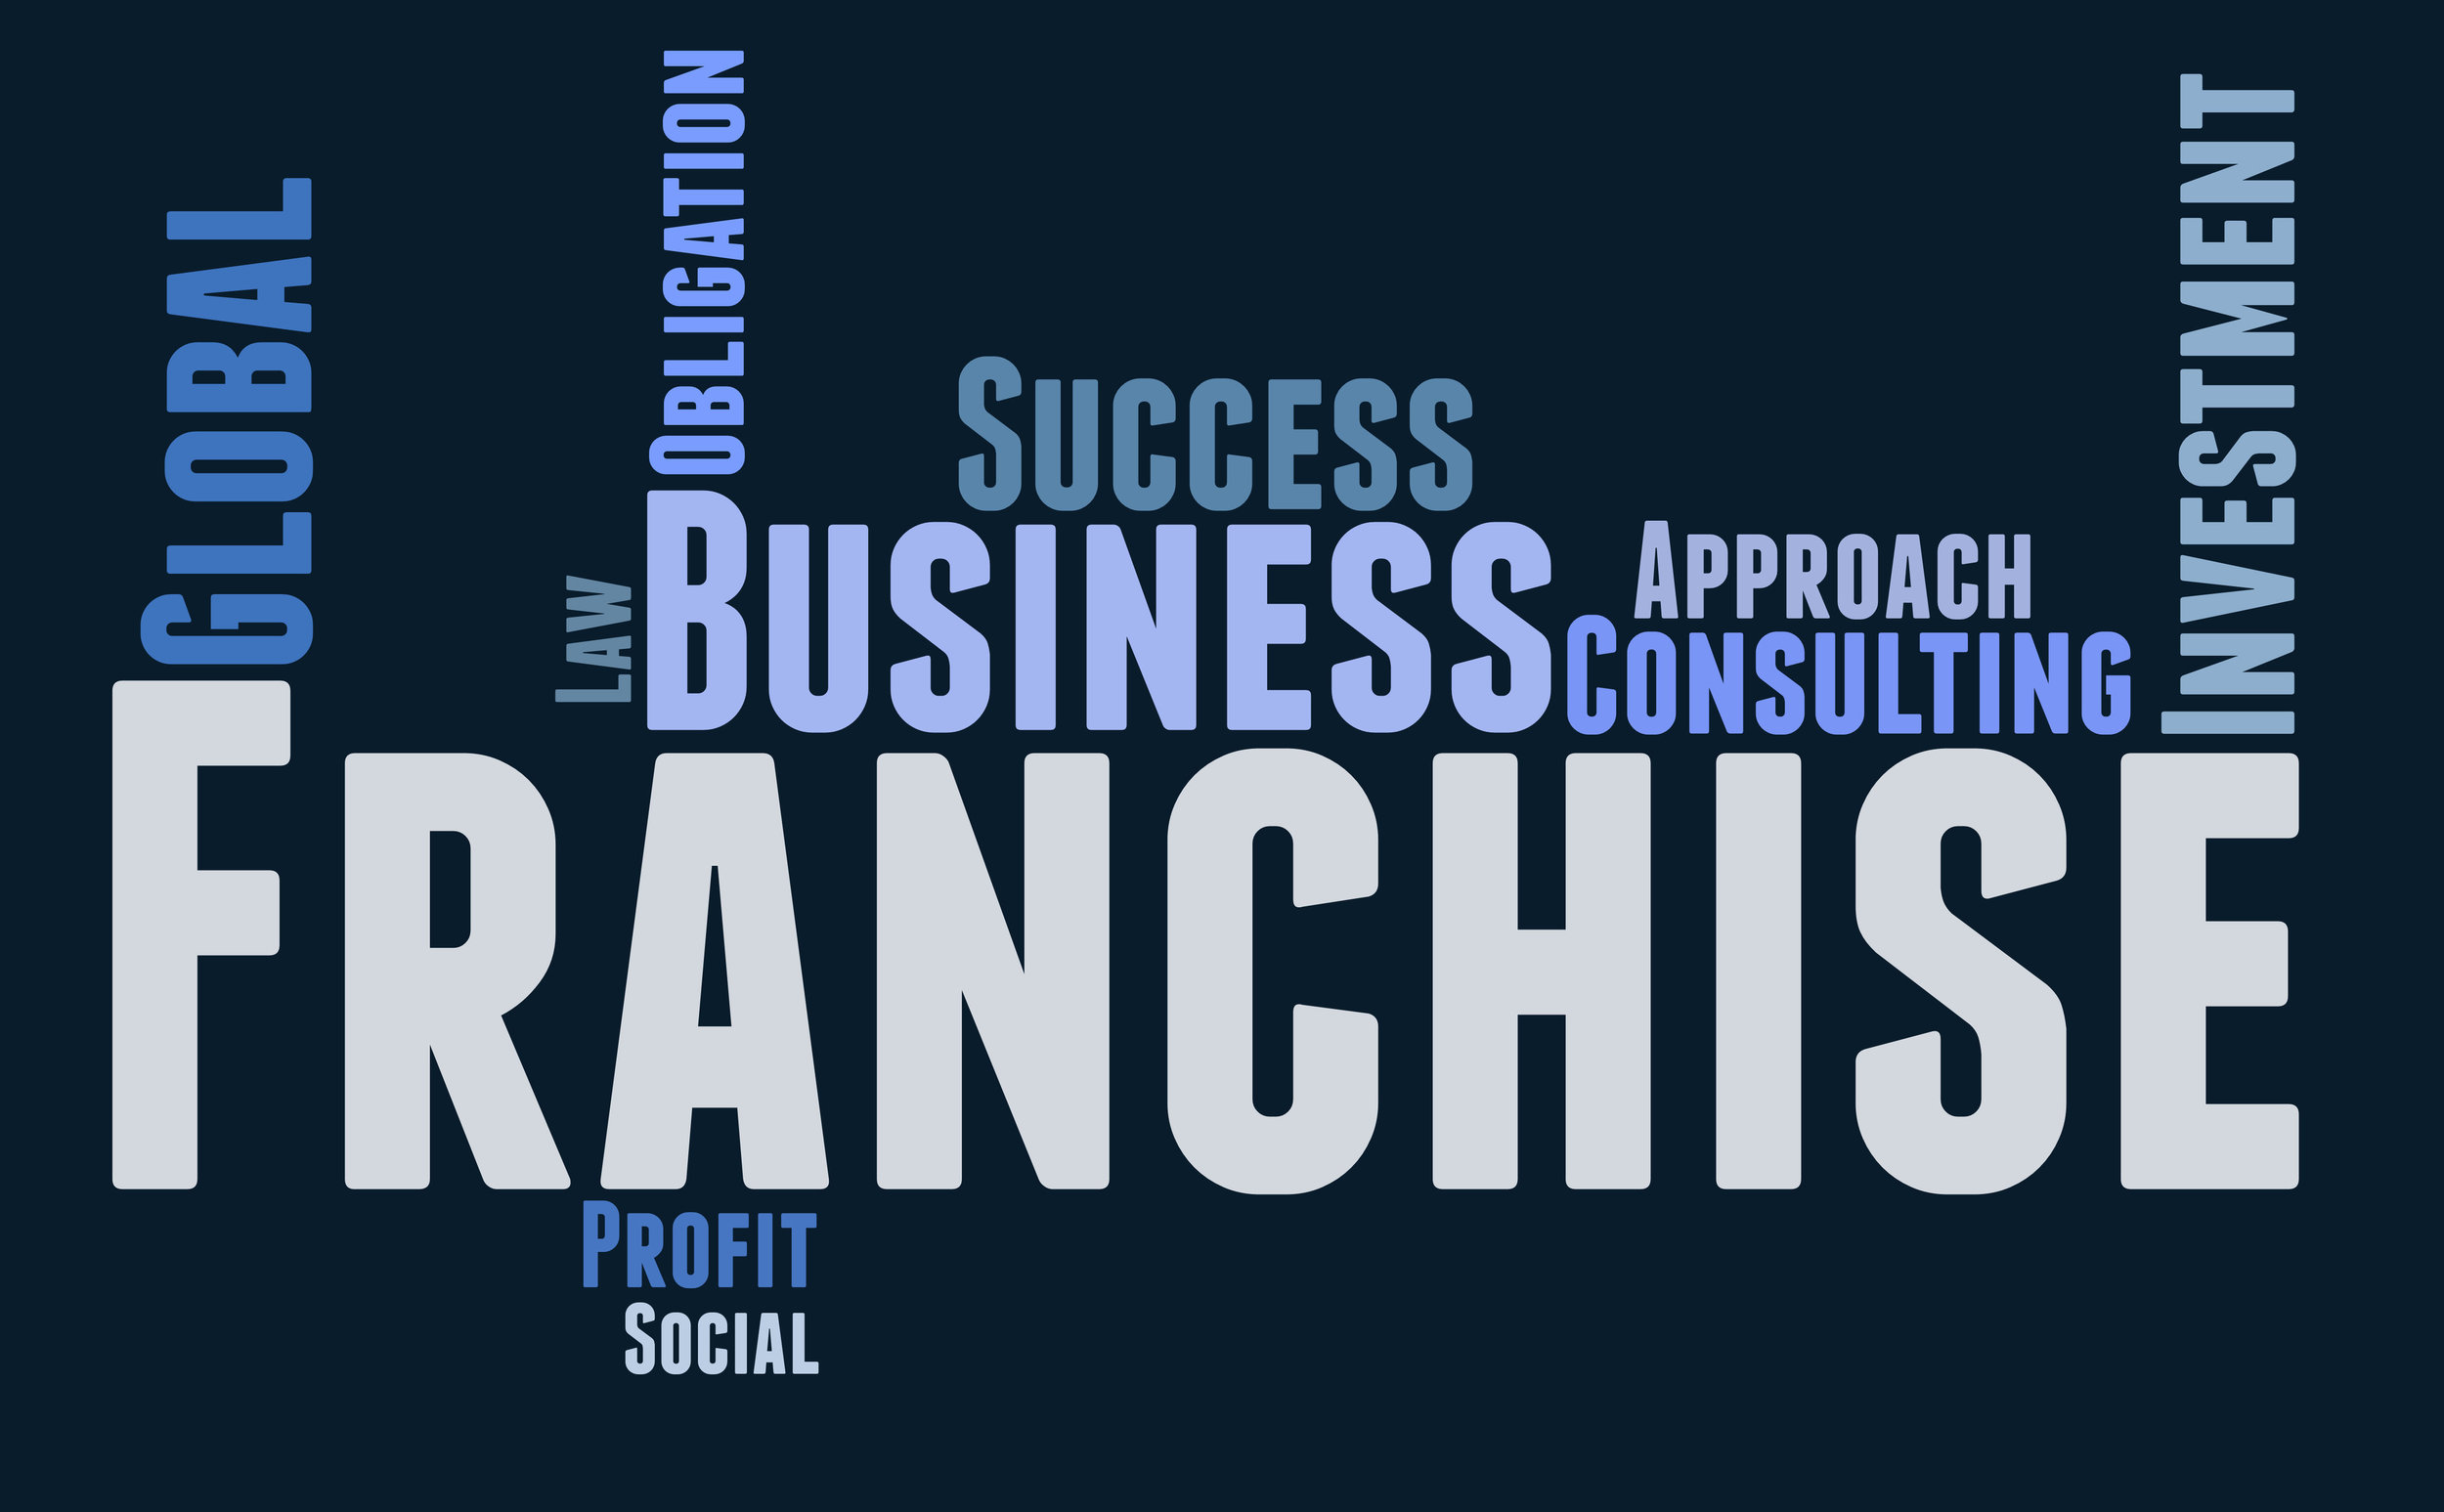 Franchise - One of the most helpful services franchisors can provide to their franchisees is... Read more